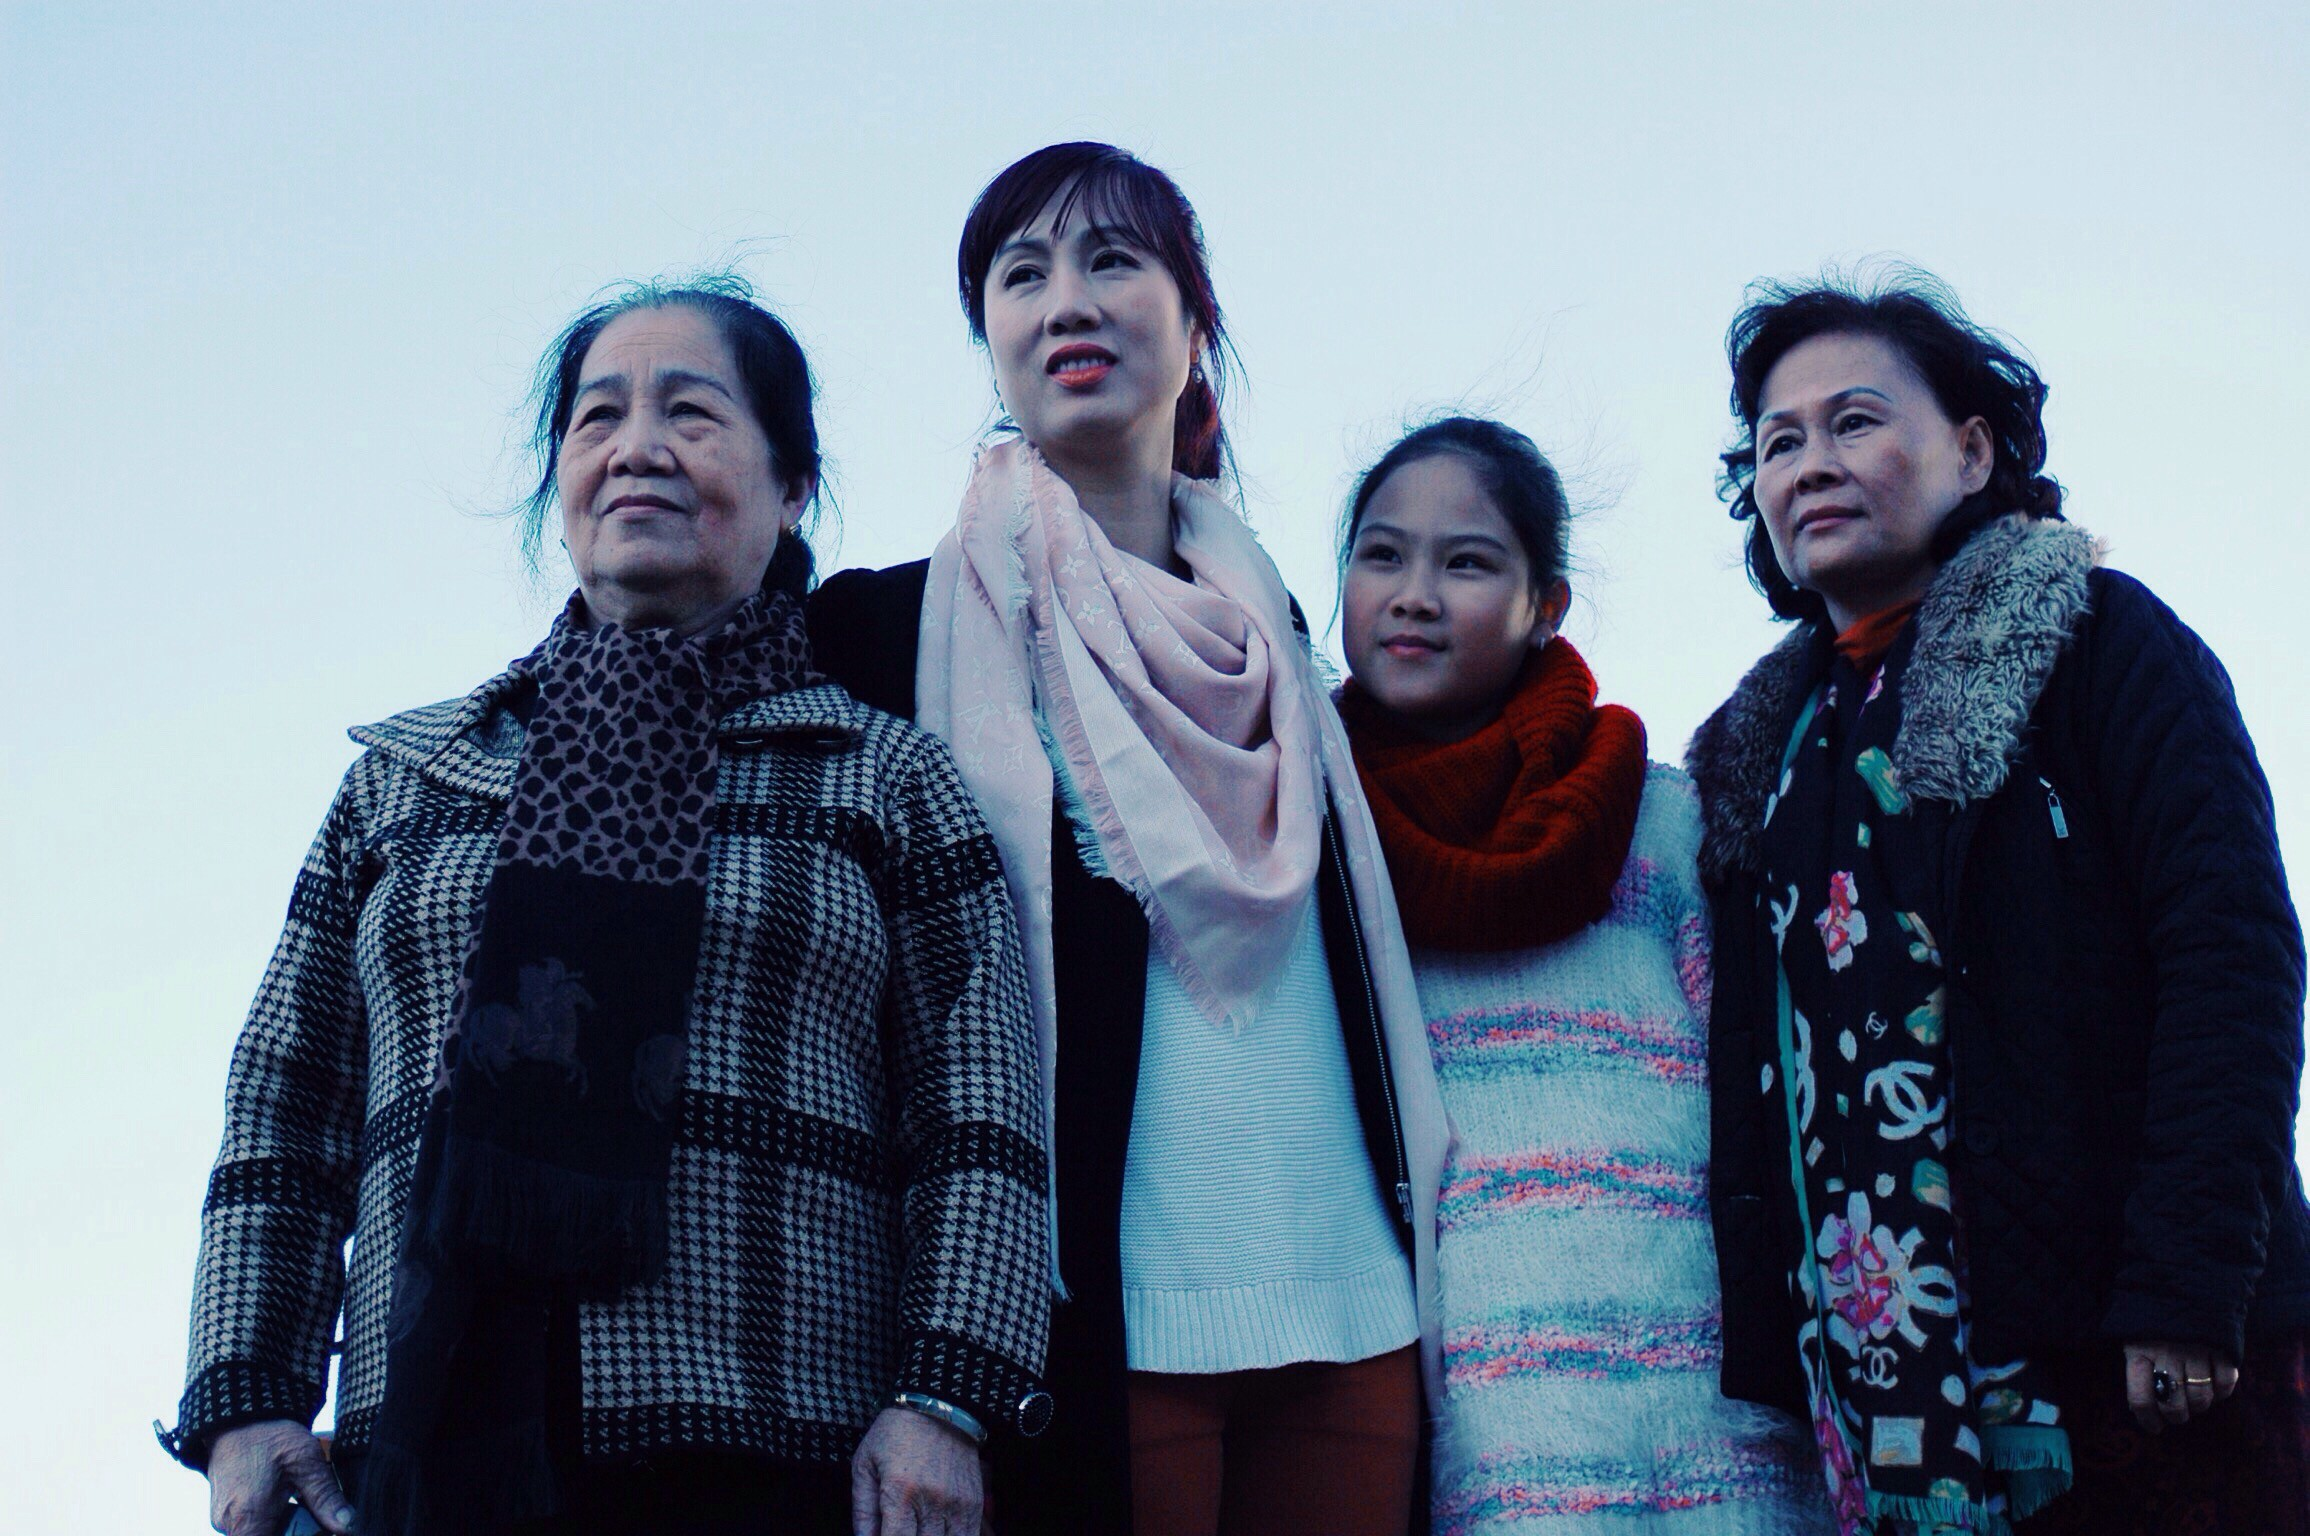 Four generations of Asian women stand in a group and look forward together.